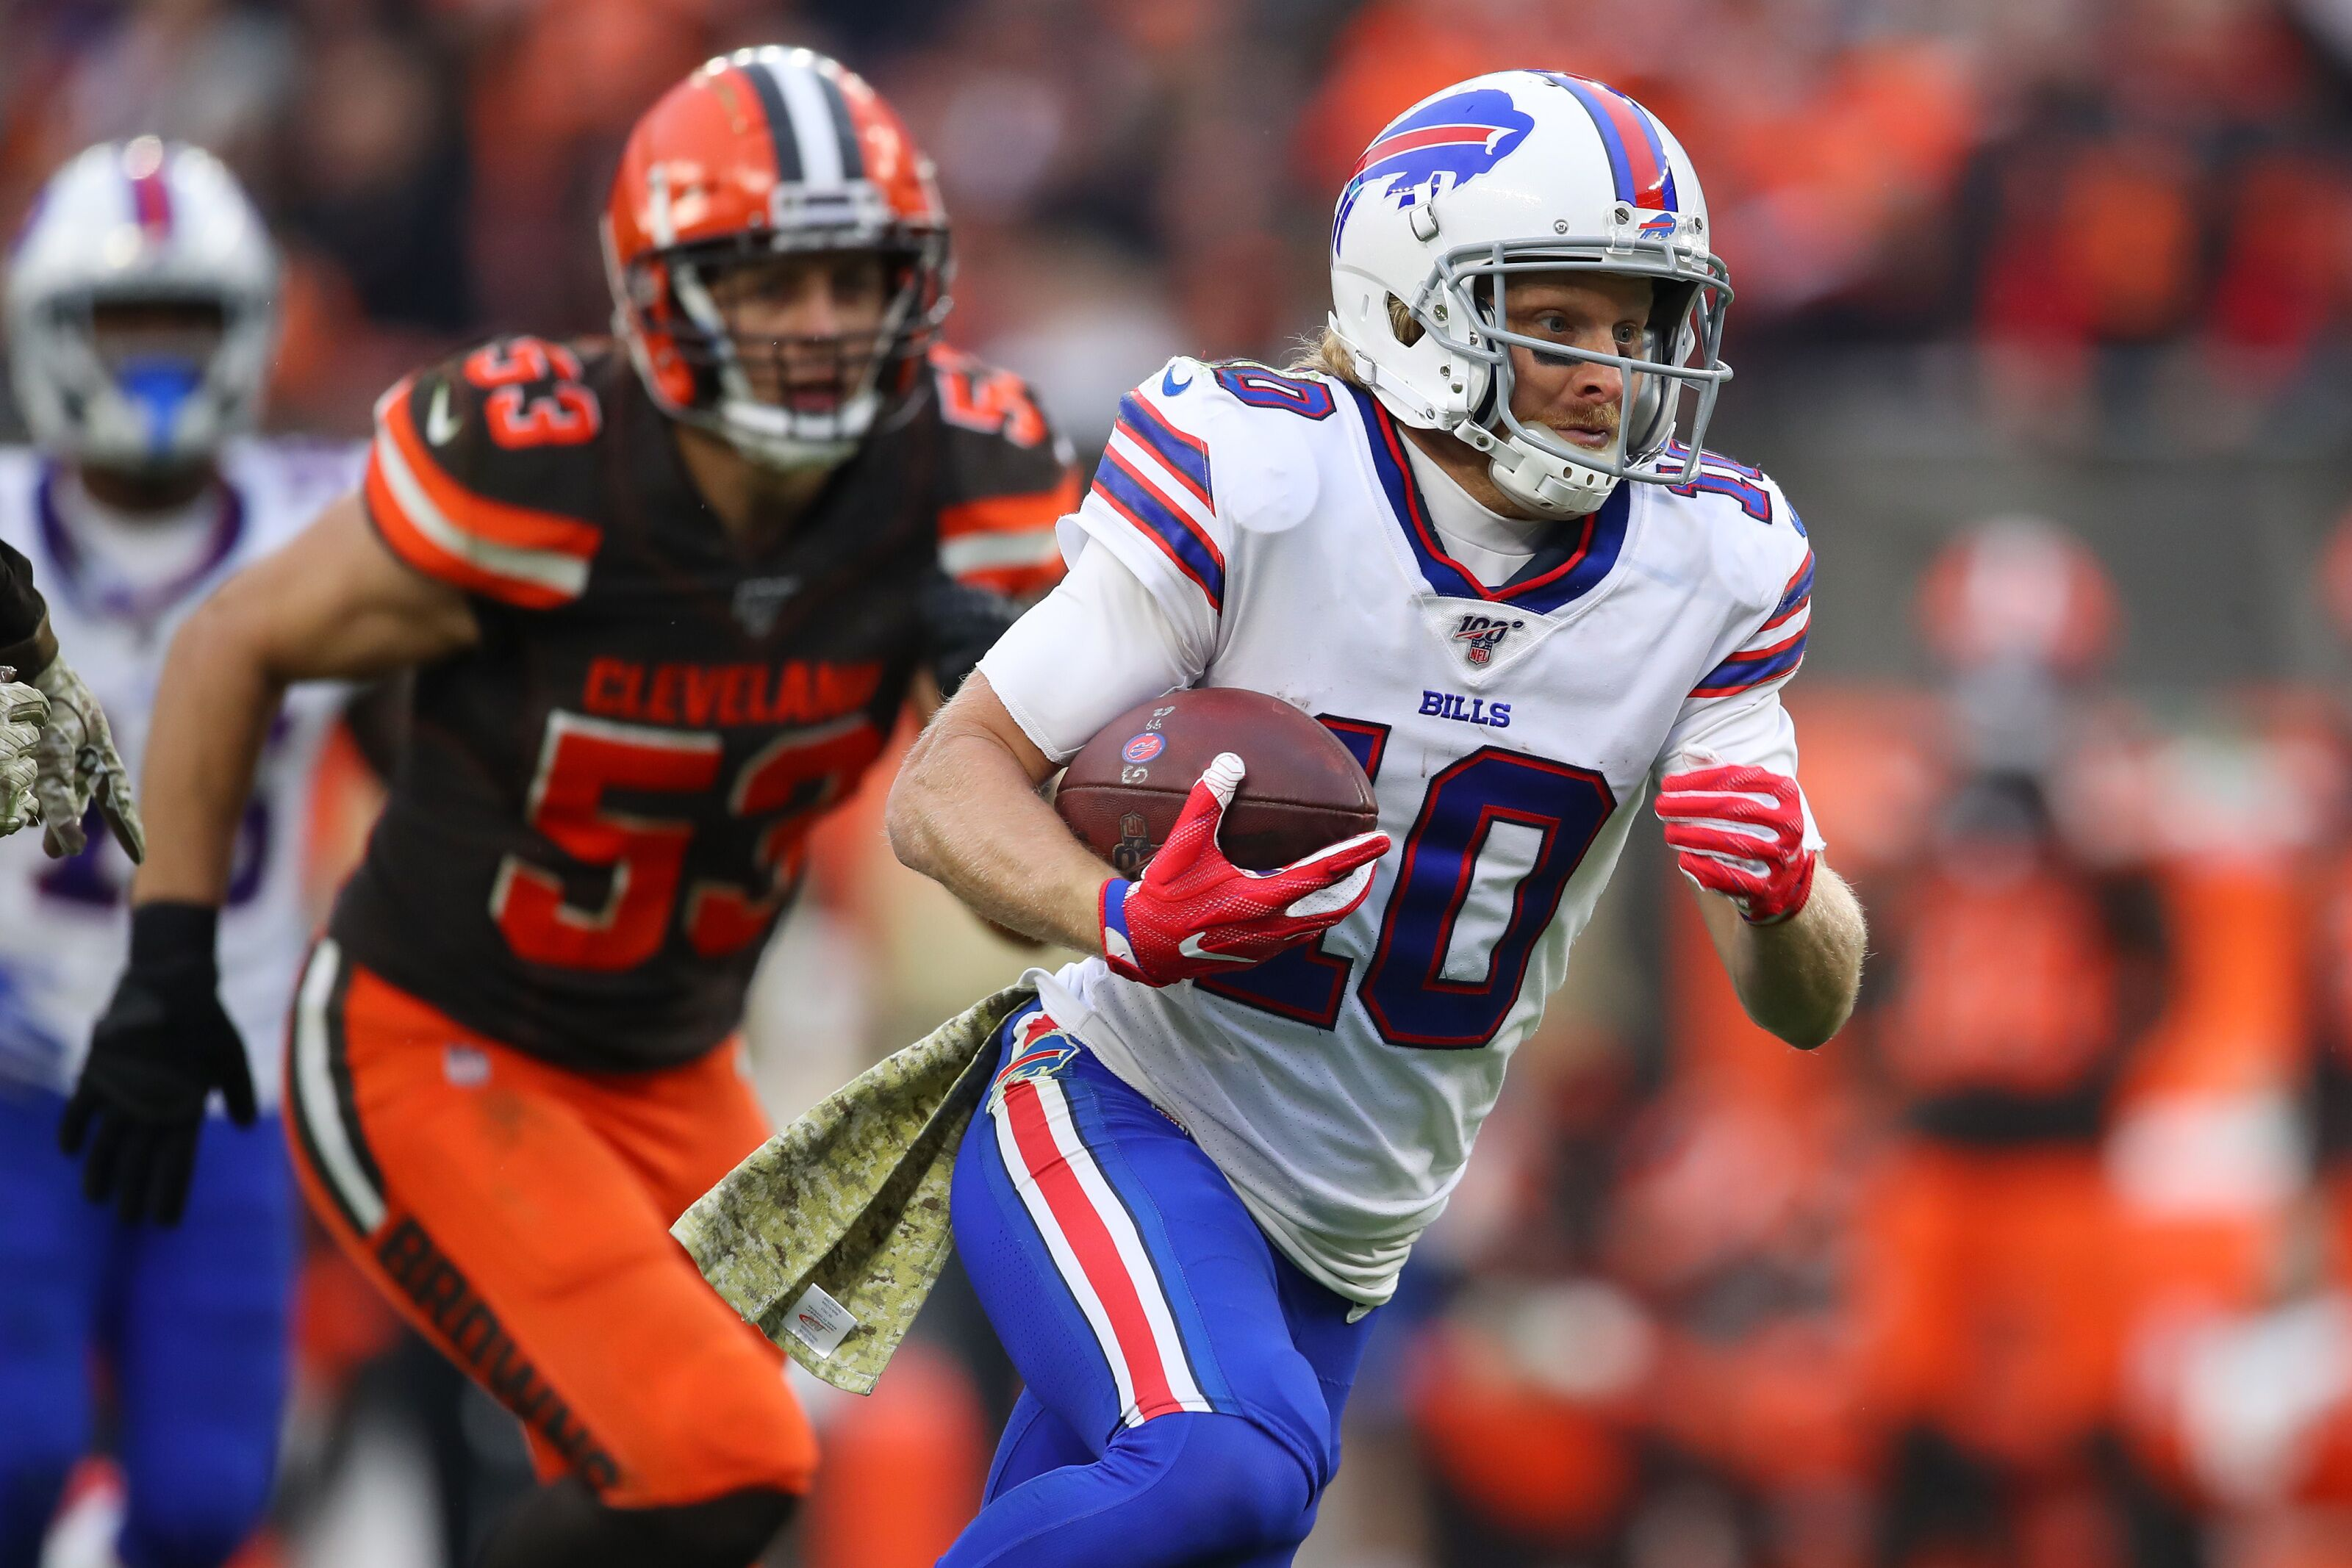 Buffalo Bills missing opportunities with underutilized Cole Beasley